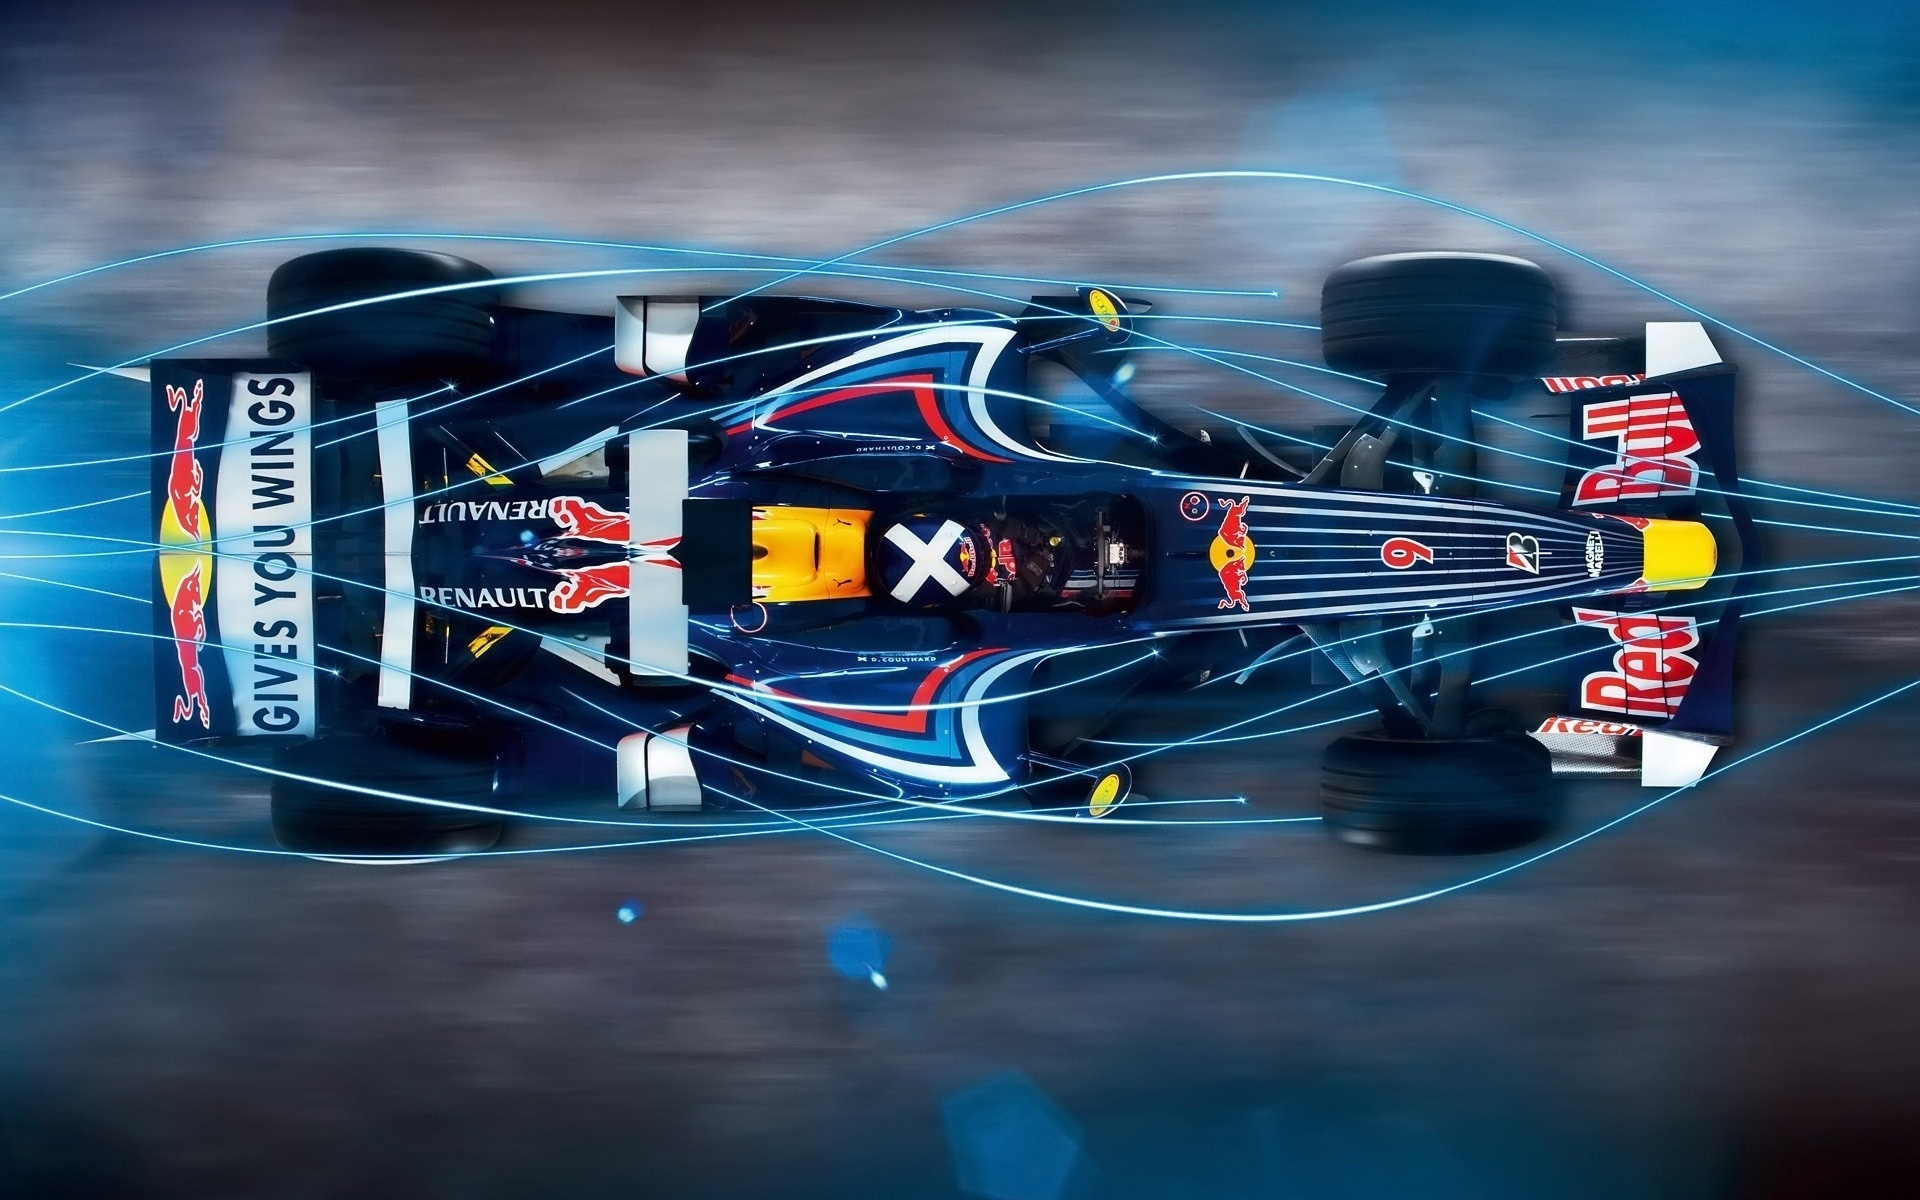 Cool Race Car Hd Wallpapers Wallpaper Blue Light Red Bull F1 Car 1920x1440 Hd Picture